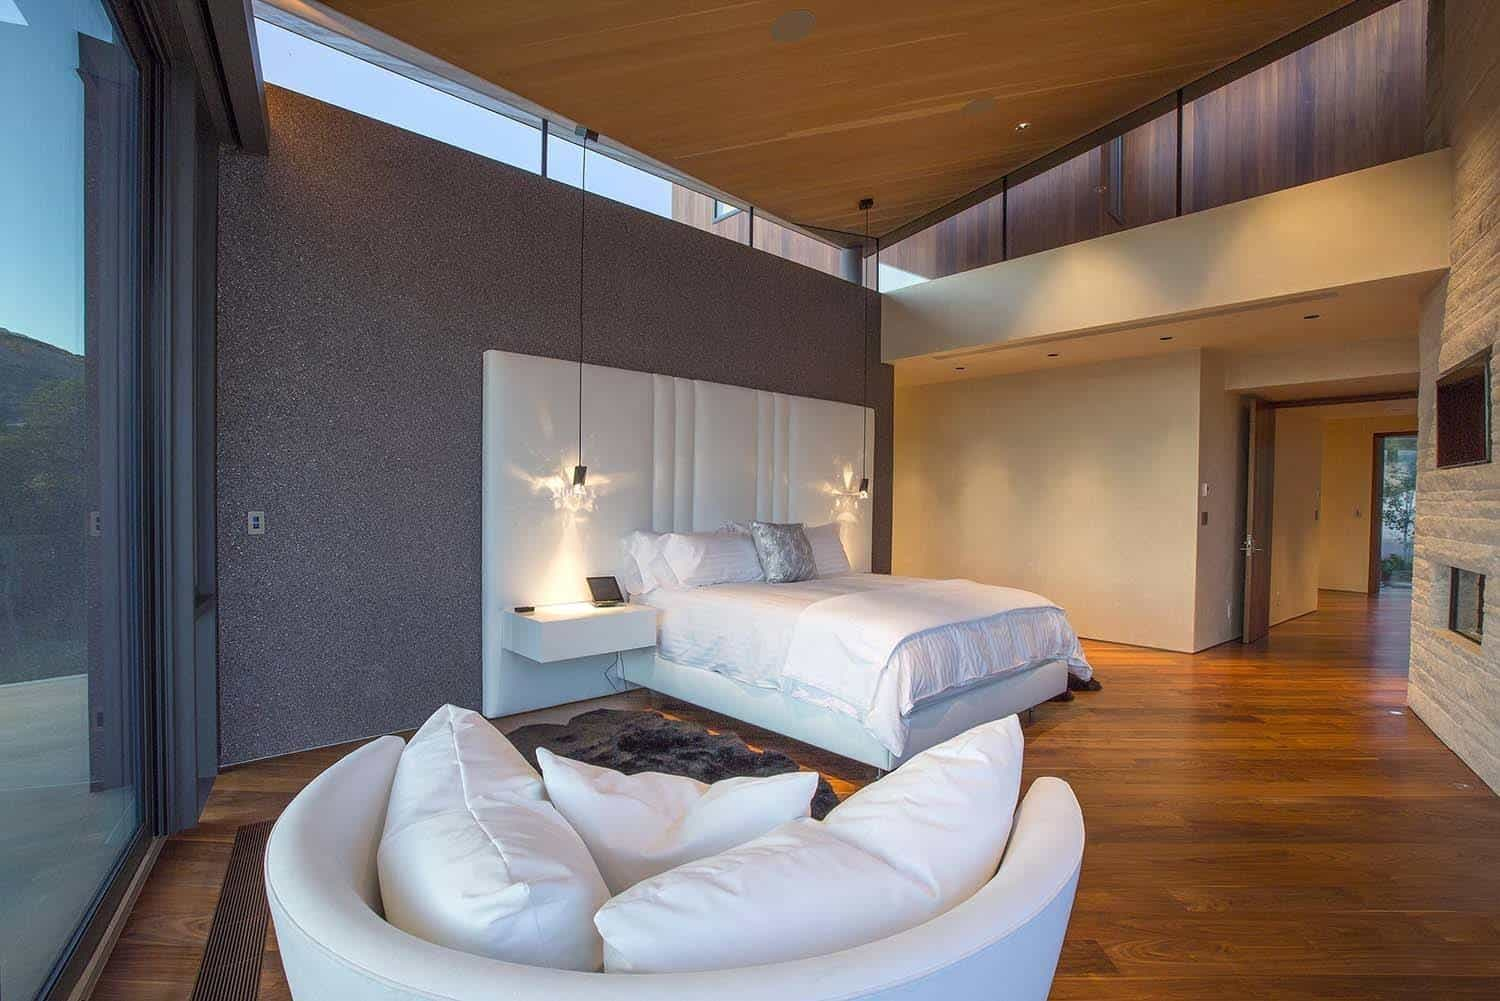 Modern-Residence-Colorado-Poss Architecture-31-1 Kindesign